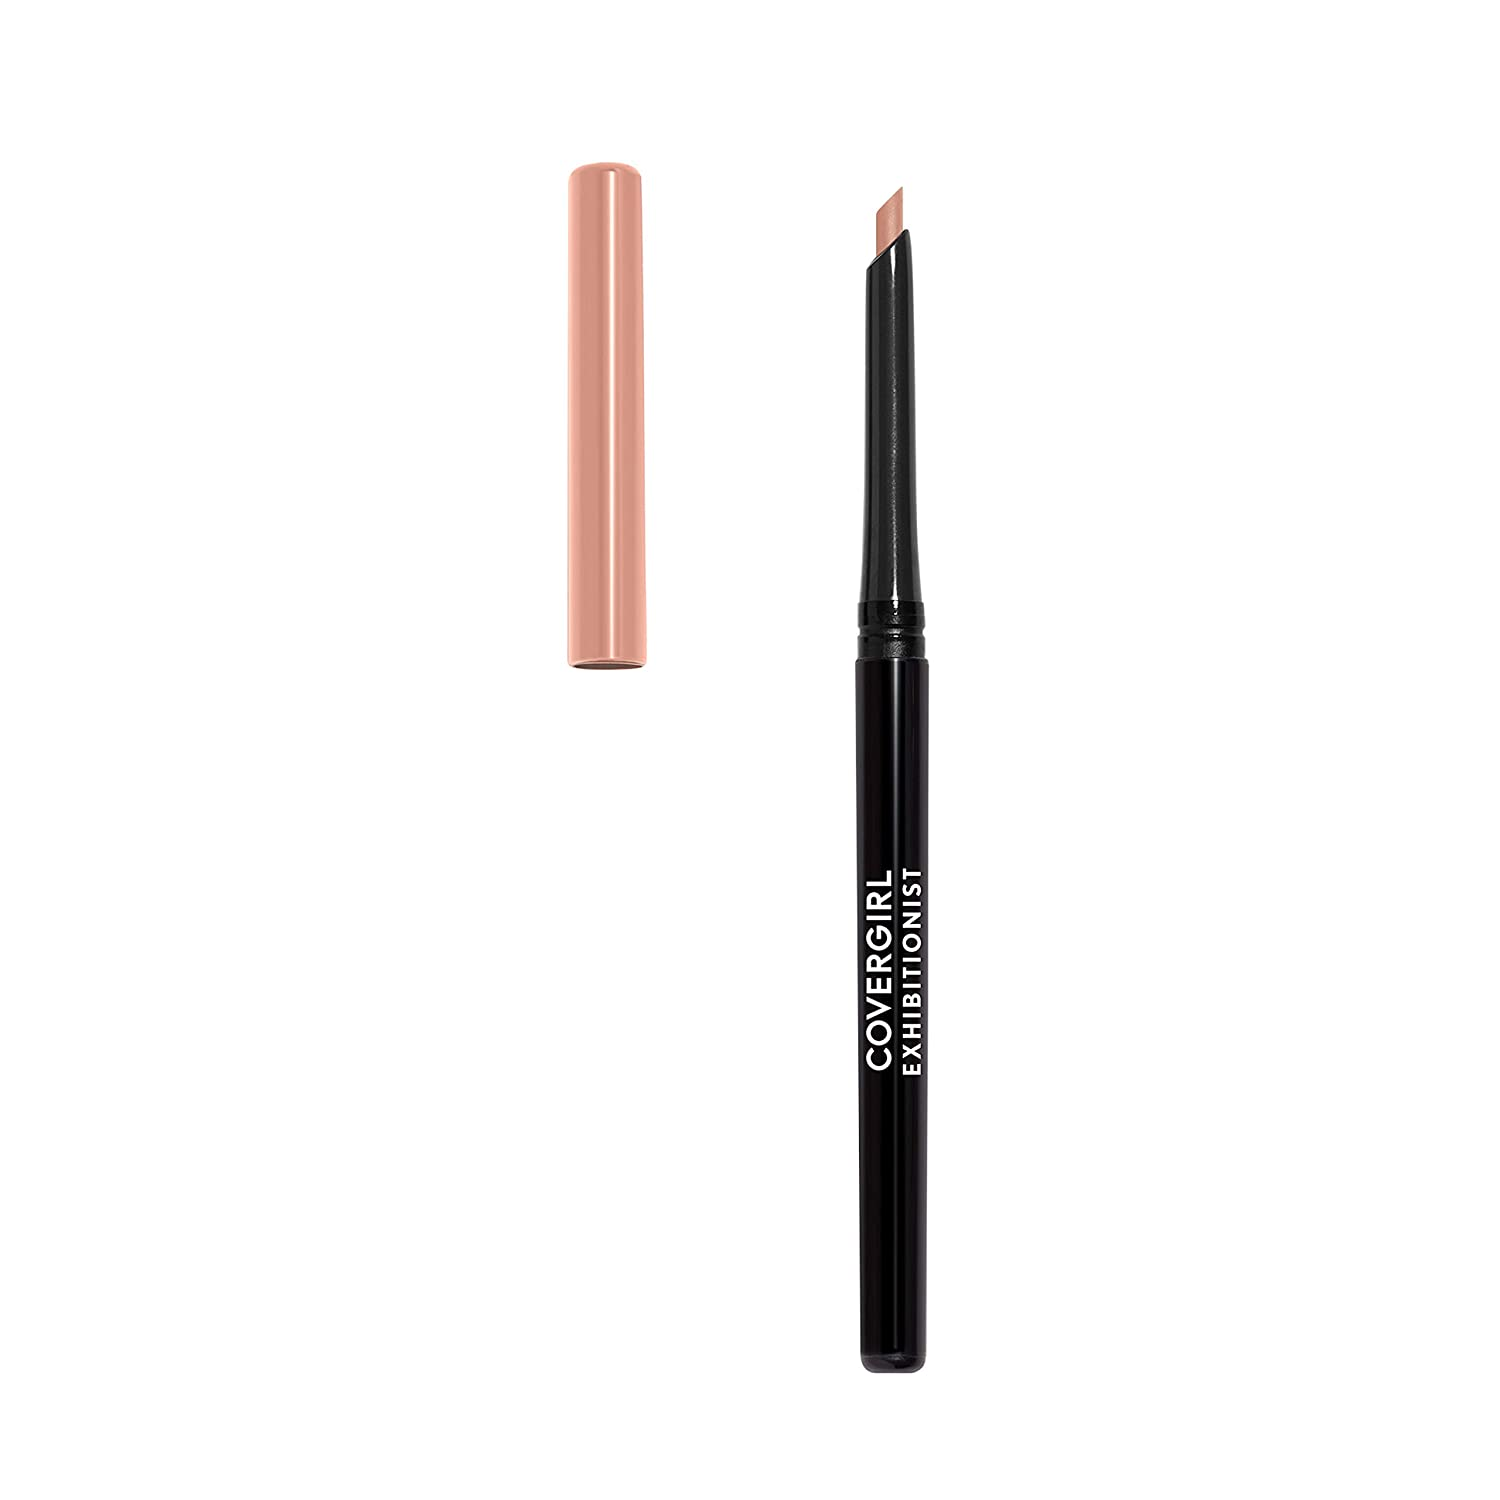 COVERGIRL Exhibitionist Lip Liner, In The Nude 200, 0.012 Ounce